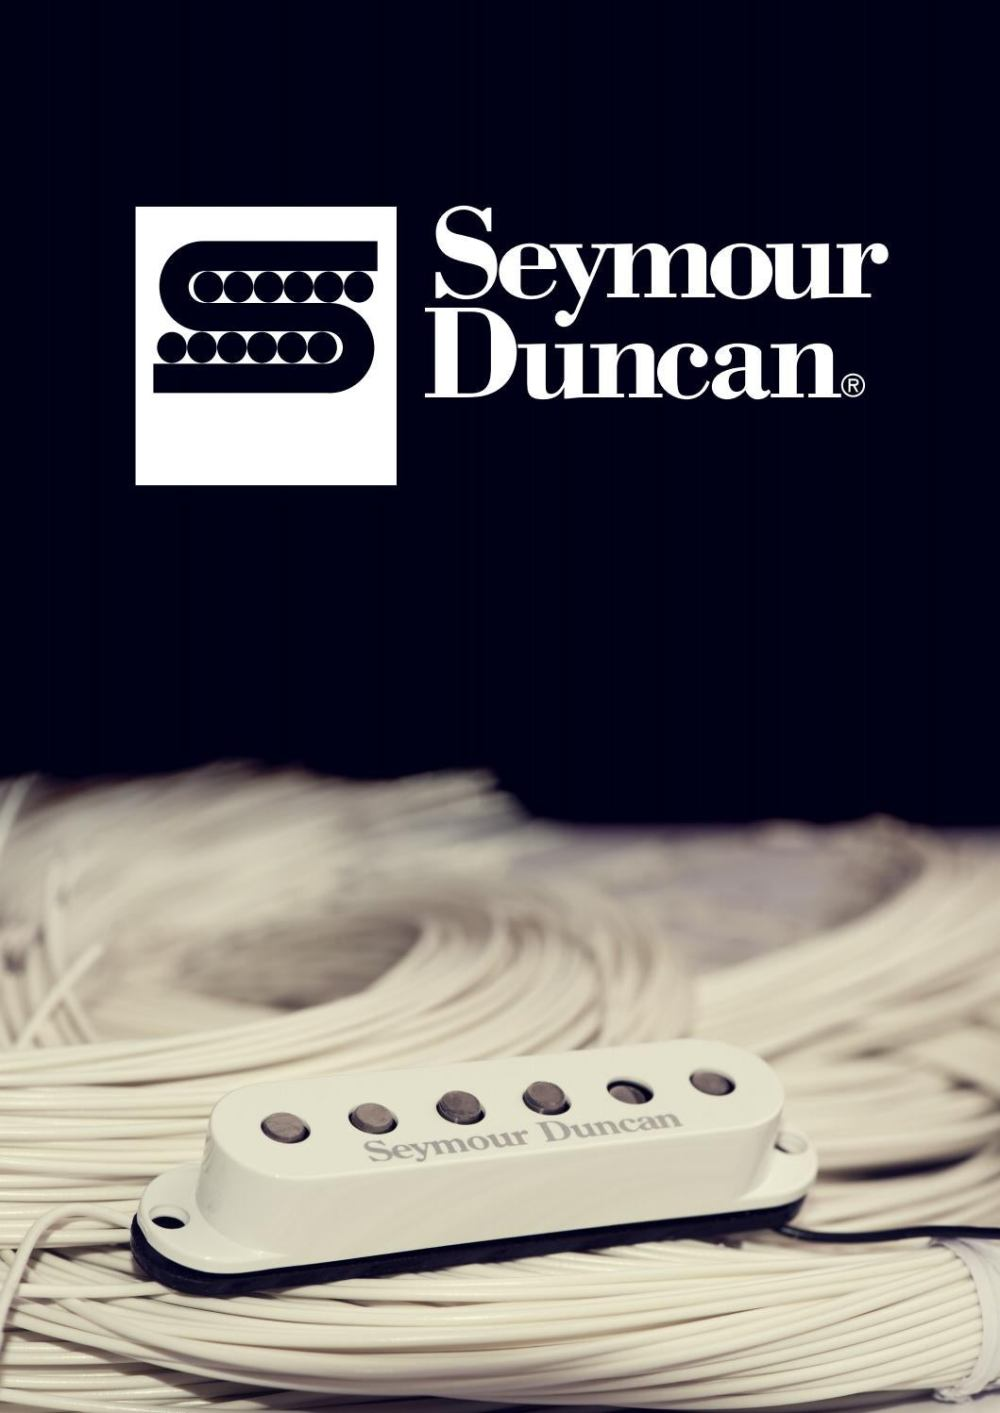 medium resolution of seymour duncan 2016 uk brochure